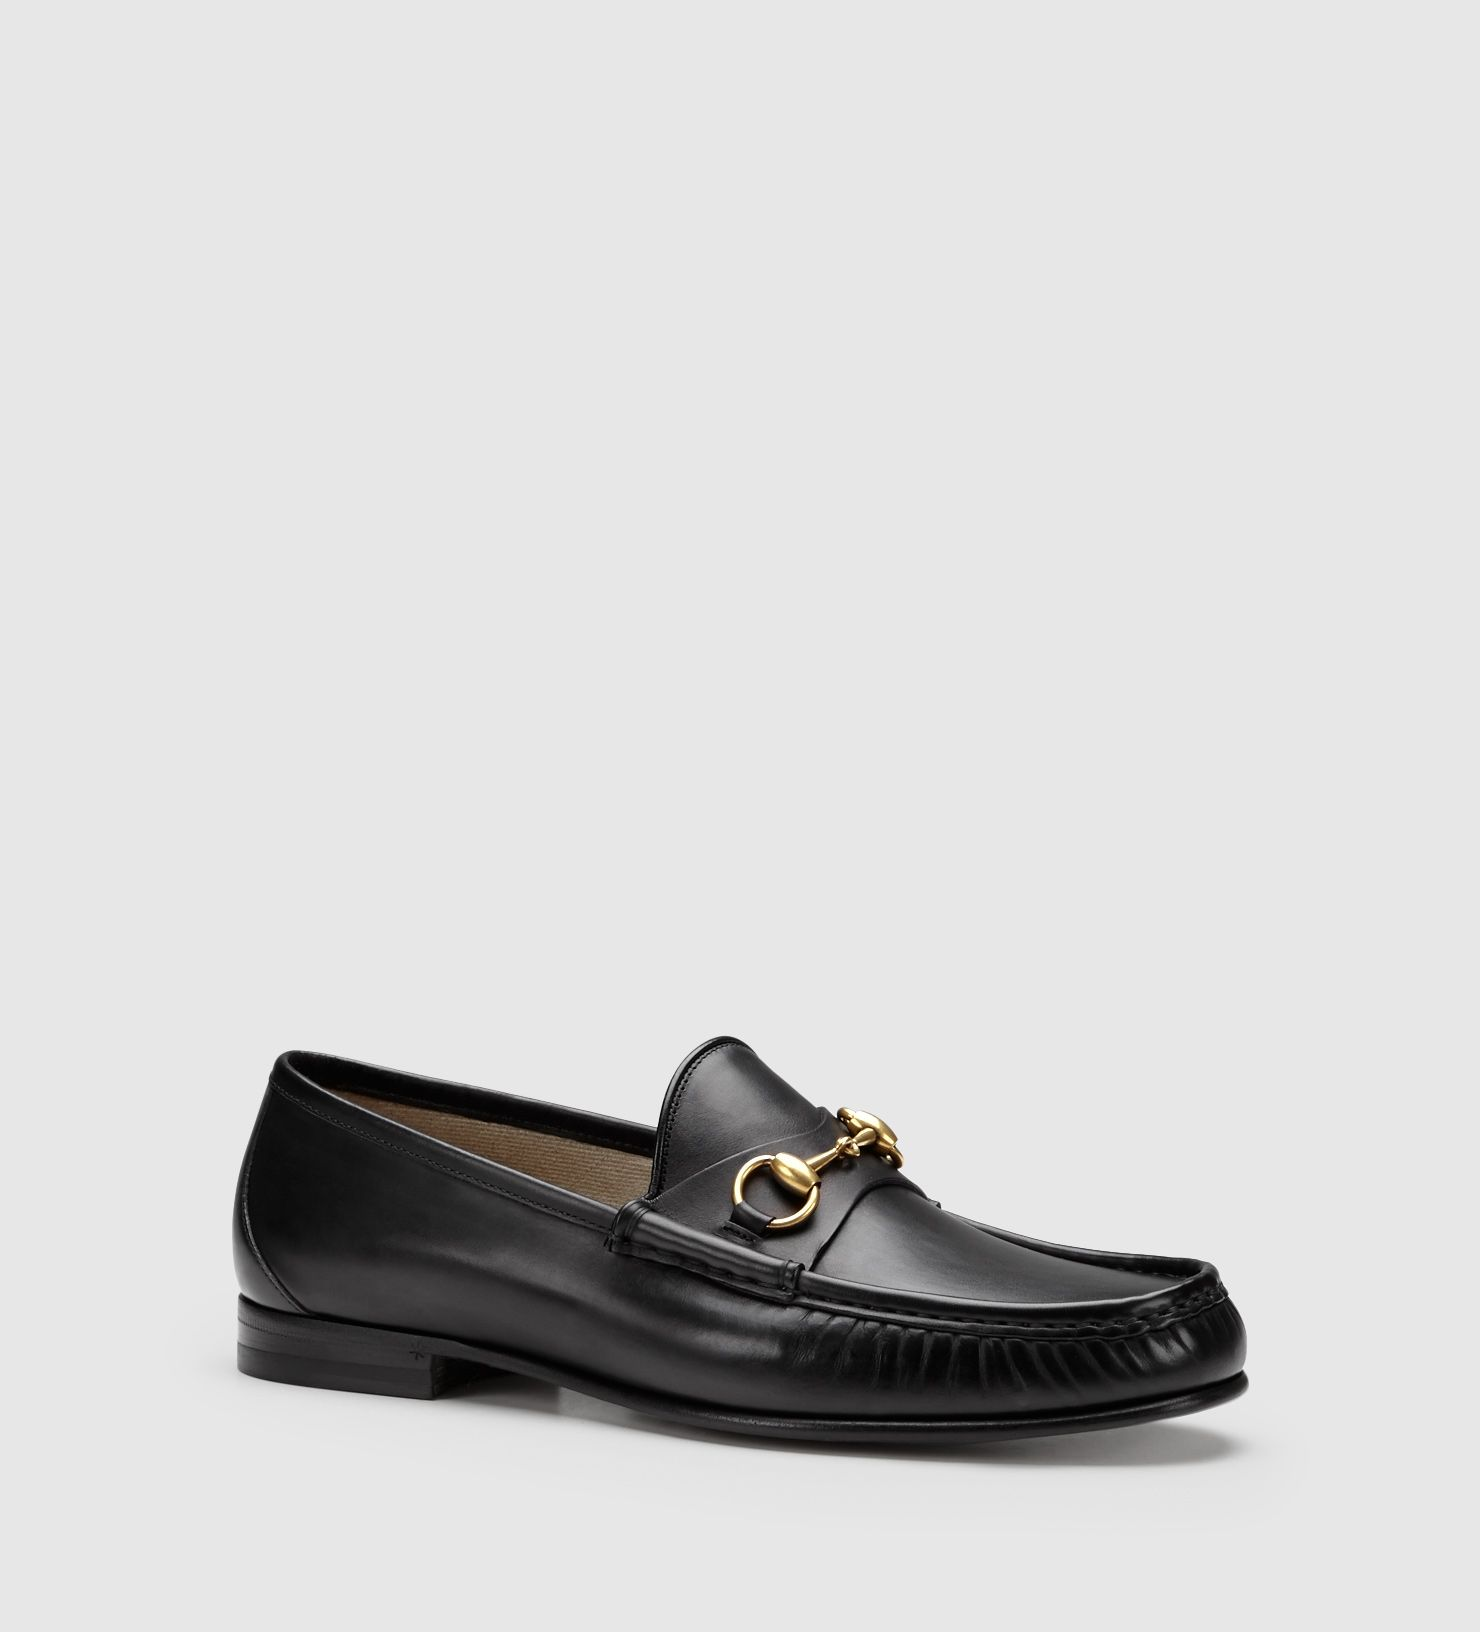 305c3c7cf8f Gucci - 1953 horsebit loafer in shaded leather